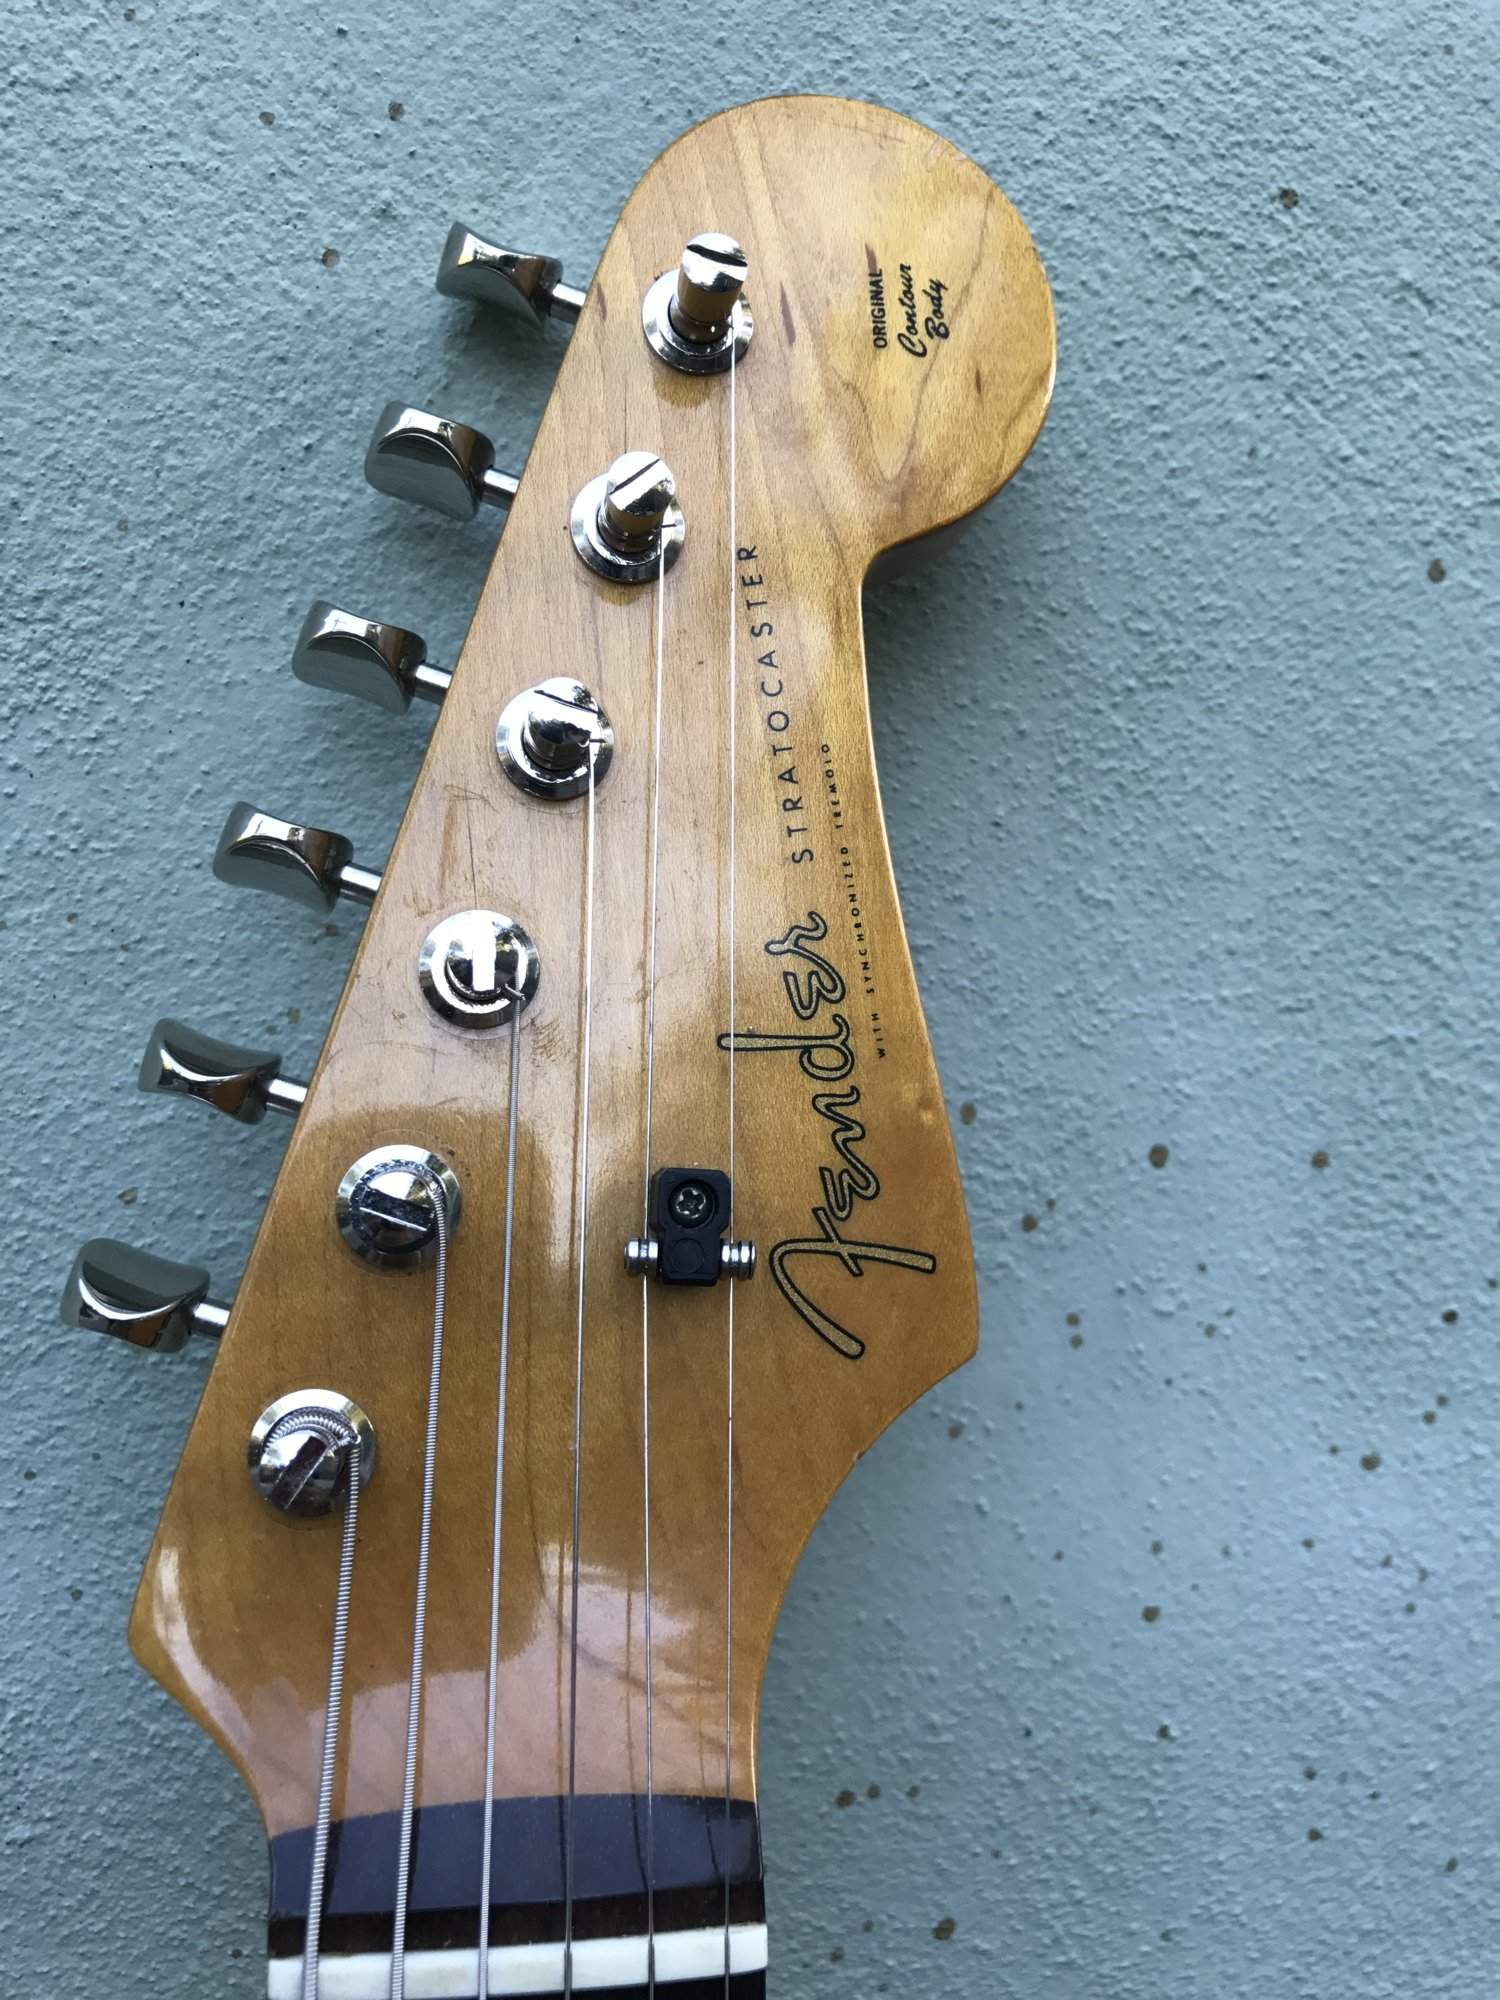 For Sale/Trade - Price Cut!!! 1990 Fender Stratocaster